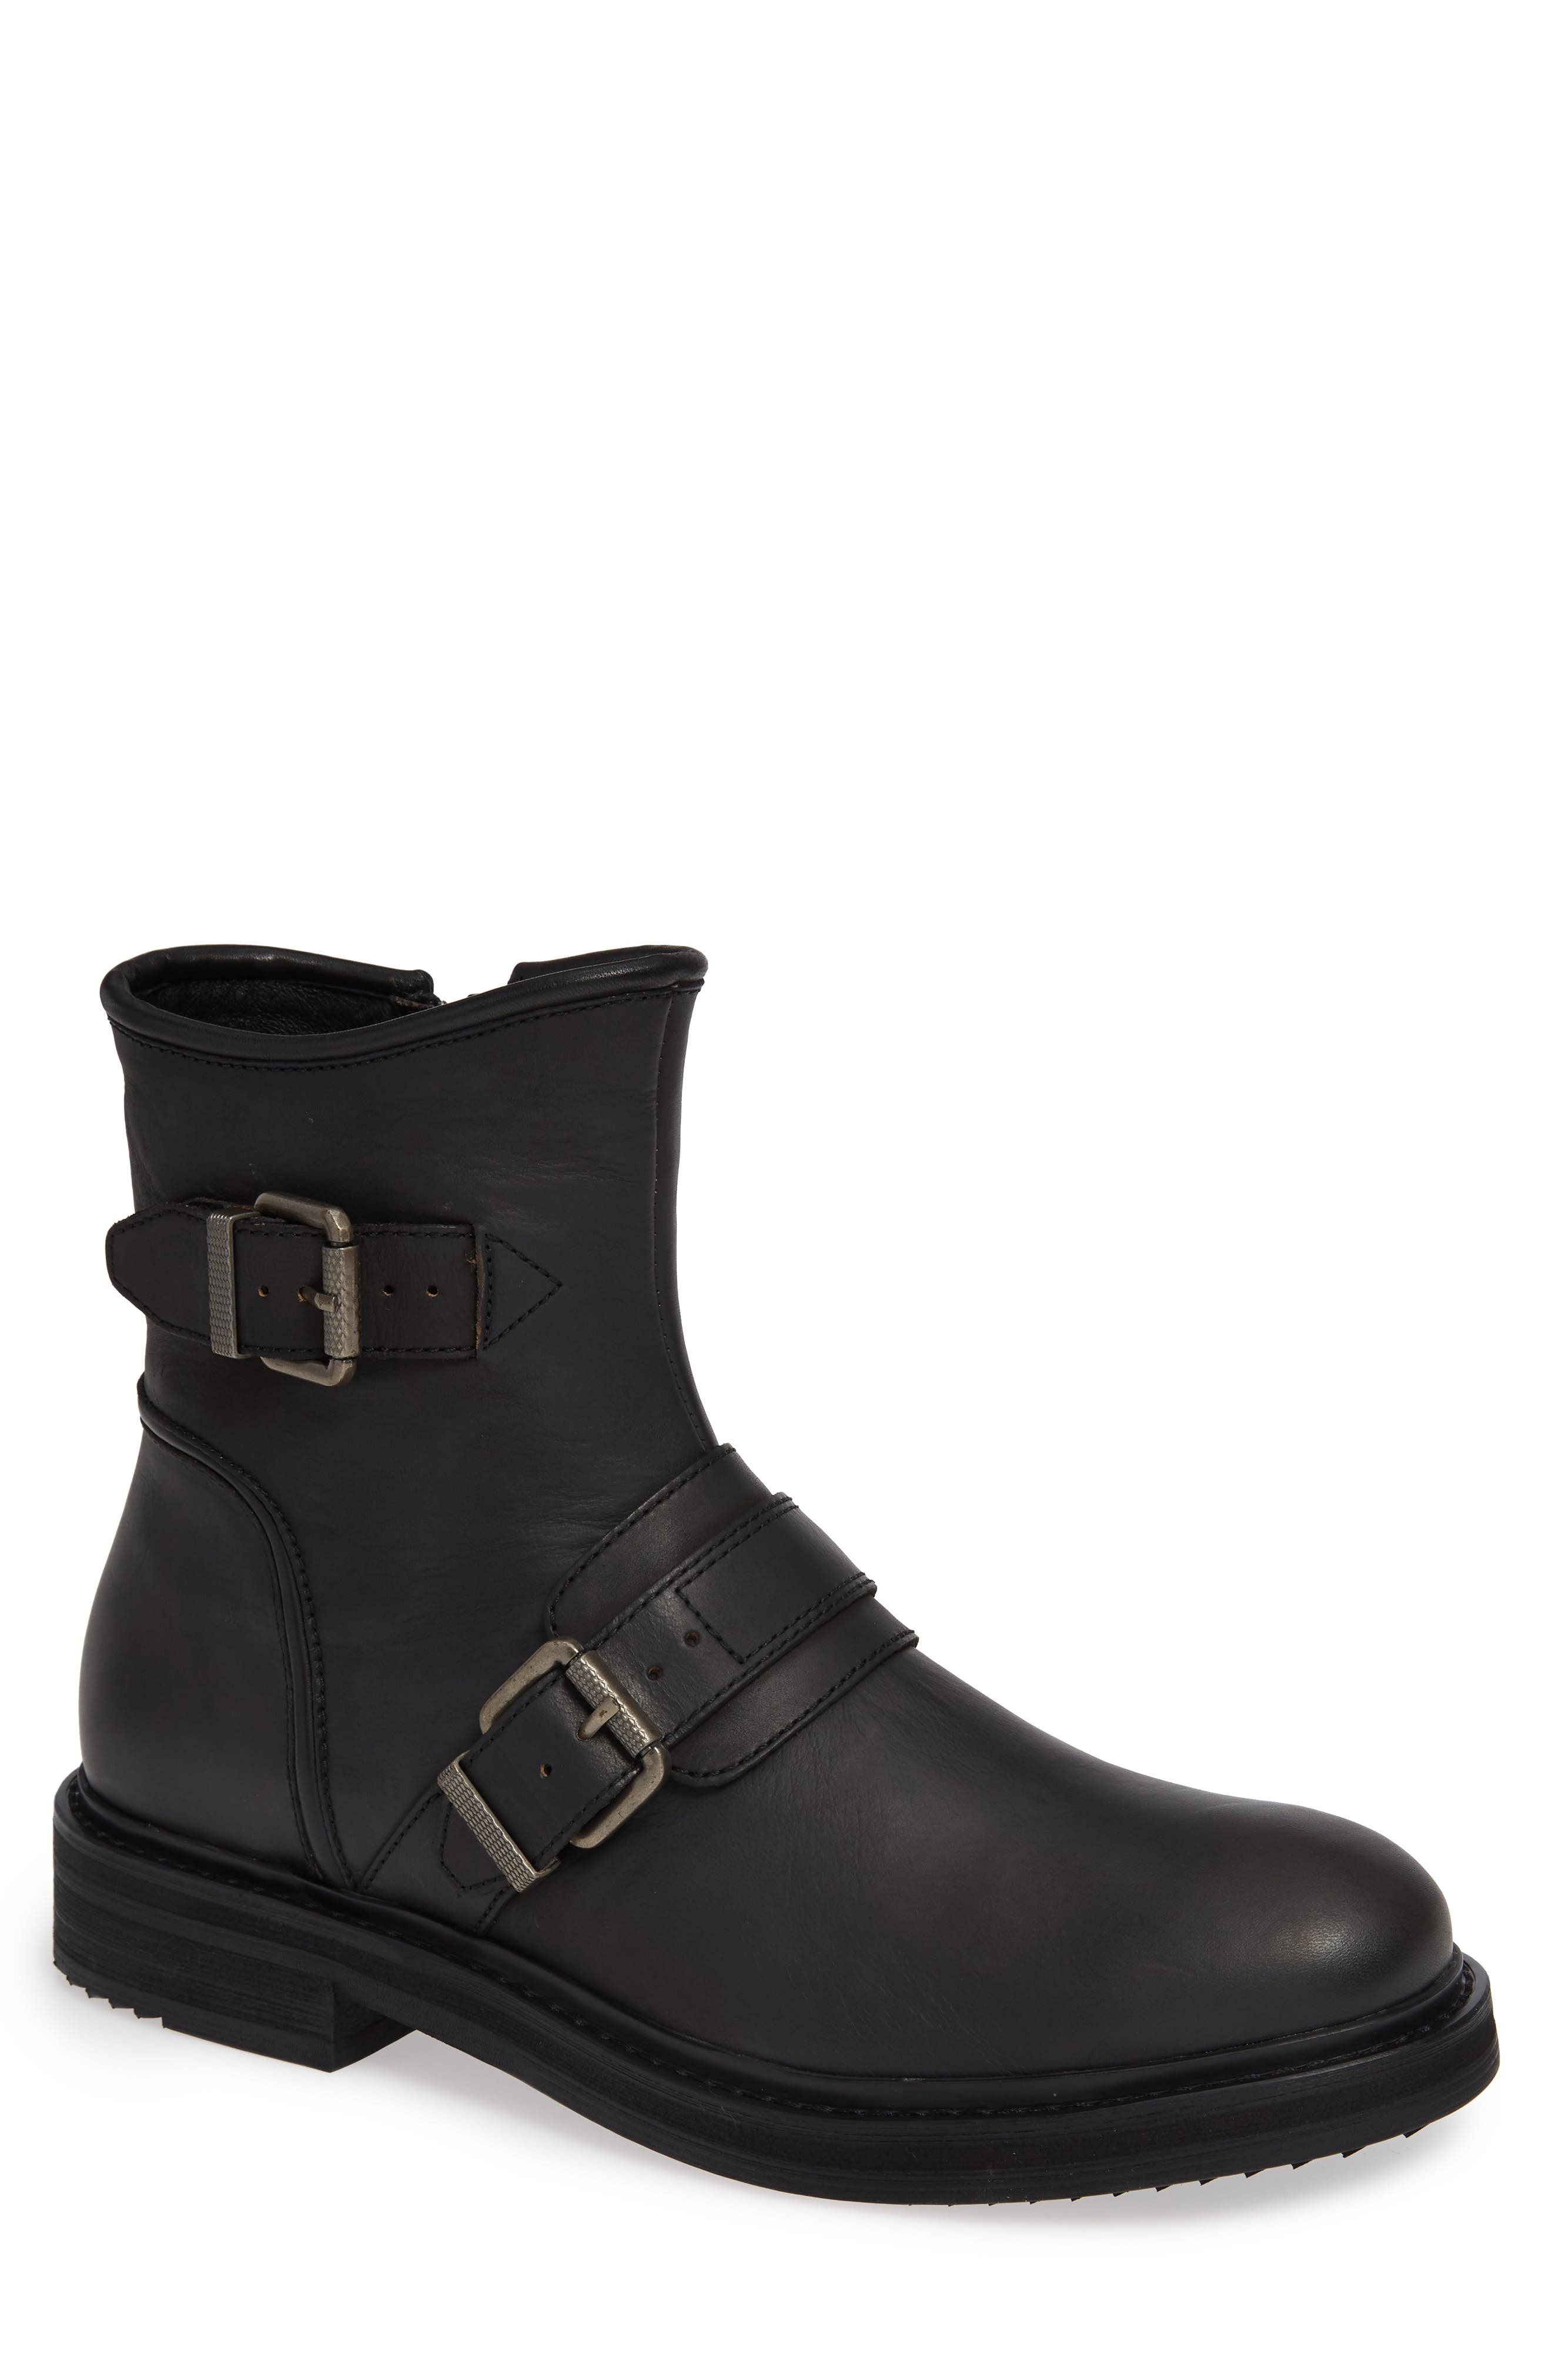 Cooper Moto Buckle Boot,                         Main,                         color, MINERAL BLACK LEATHER